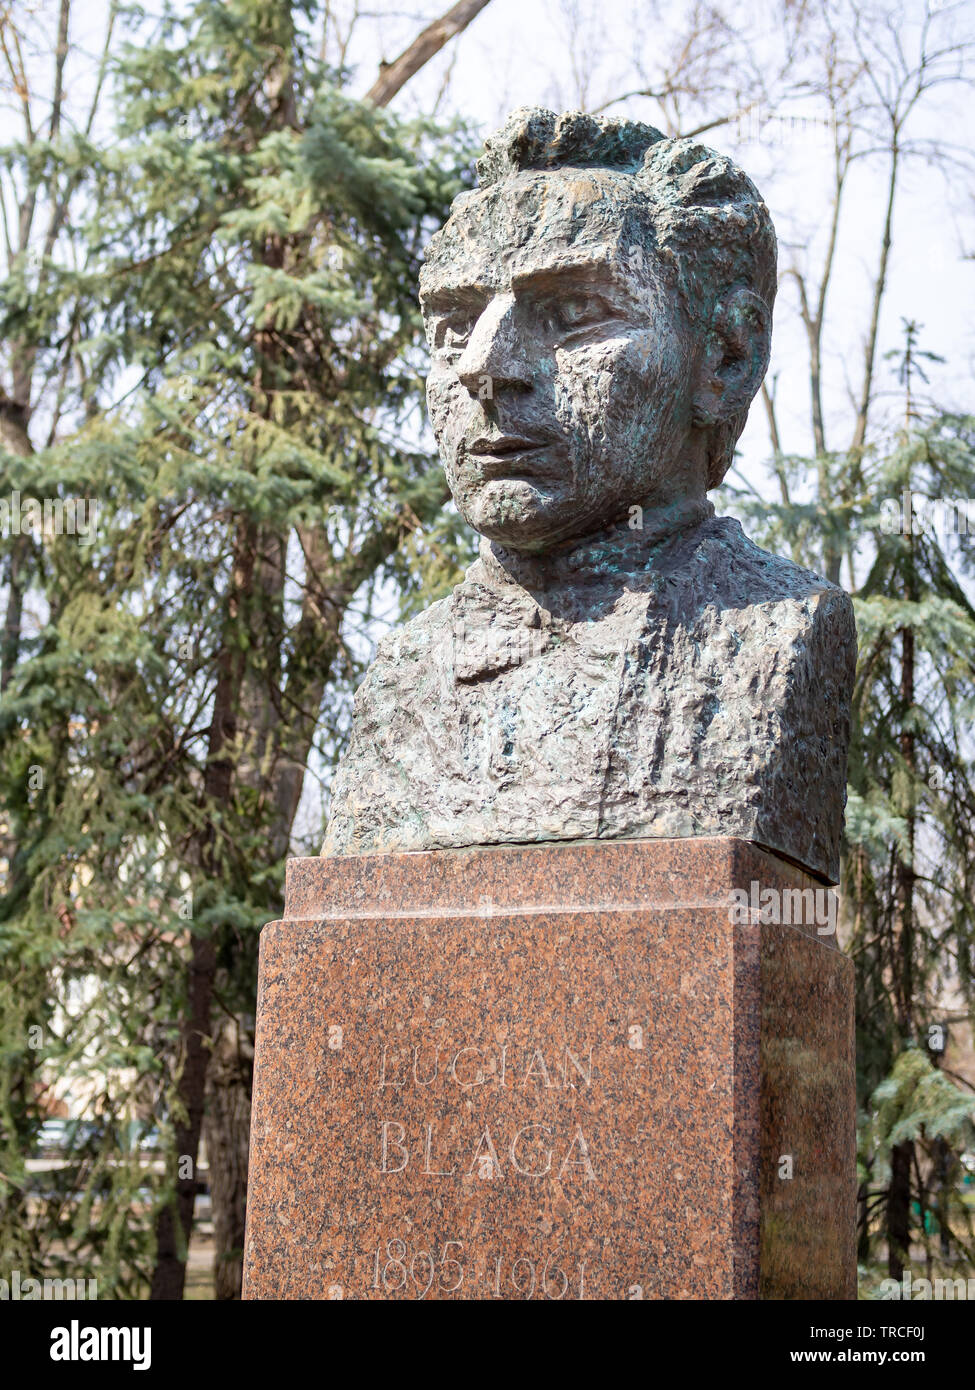 CHISINAU, MOLDOVA-MARCH 21, 2019: Lucian Blaga bust by Alexandra Picunov in the Alley of Classics - Stock Image